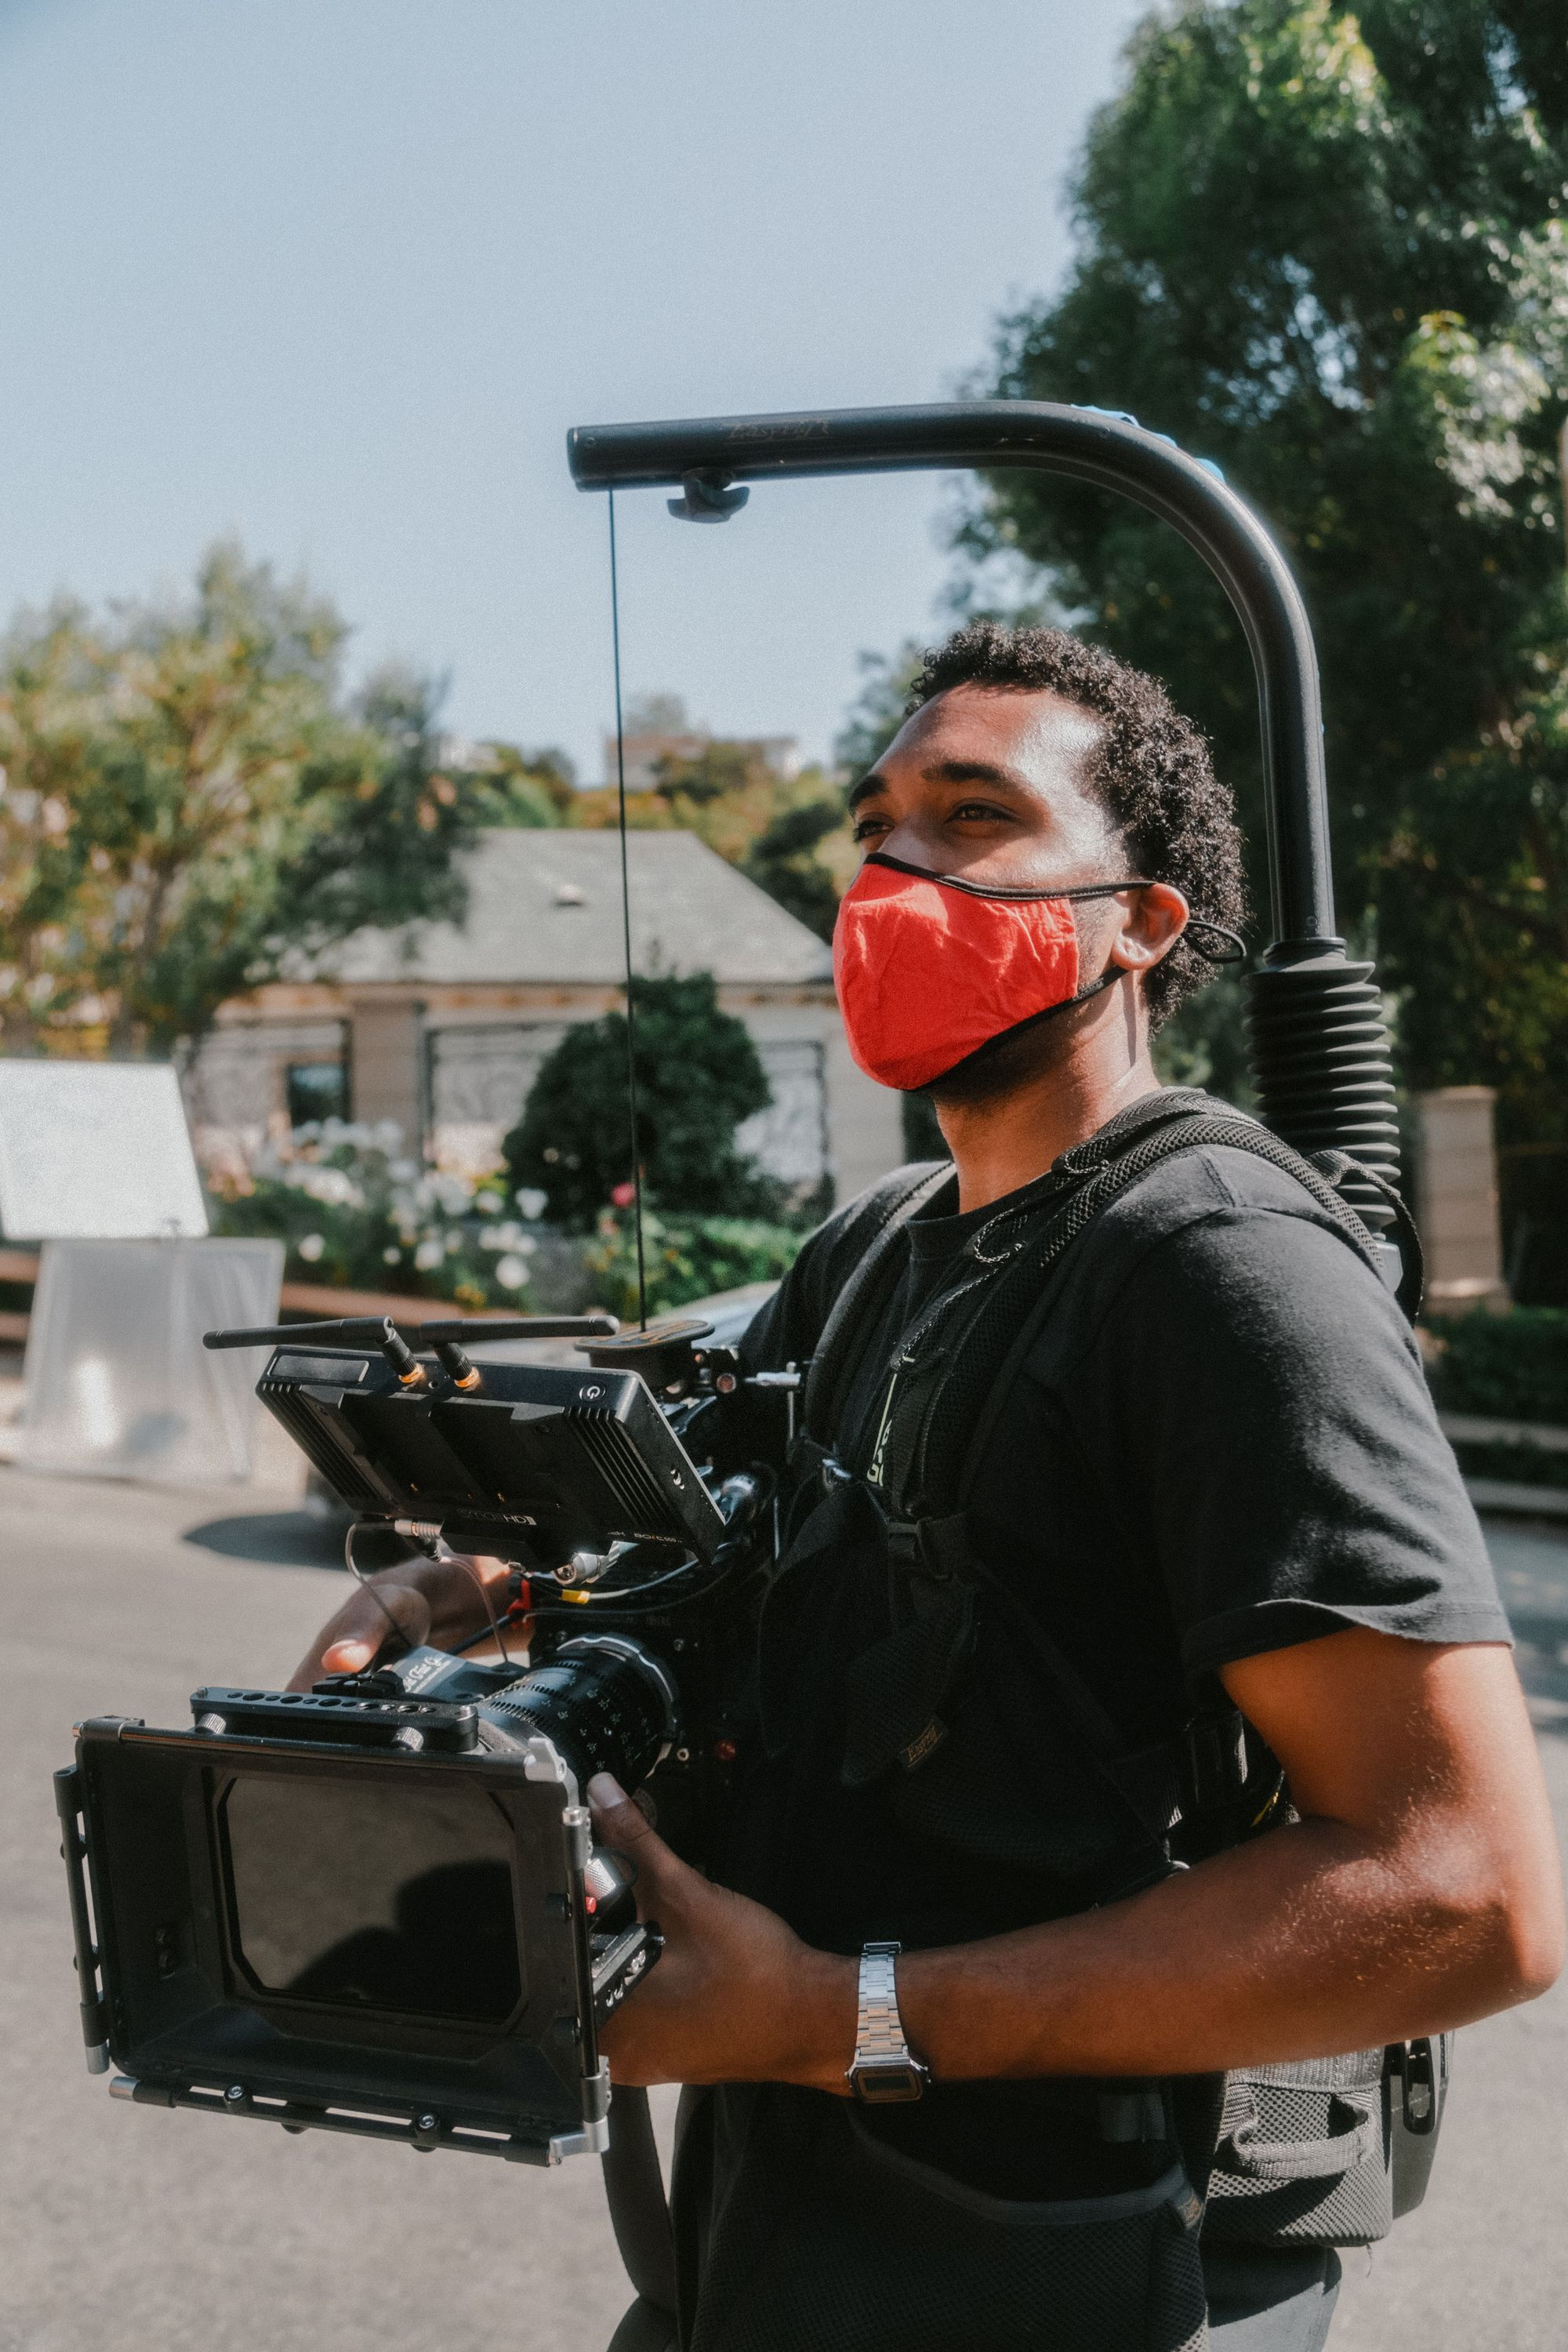 Music video mobile gear